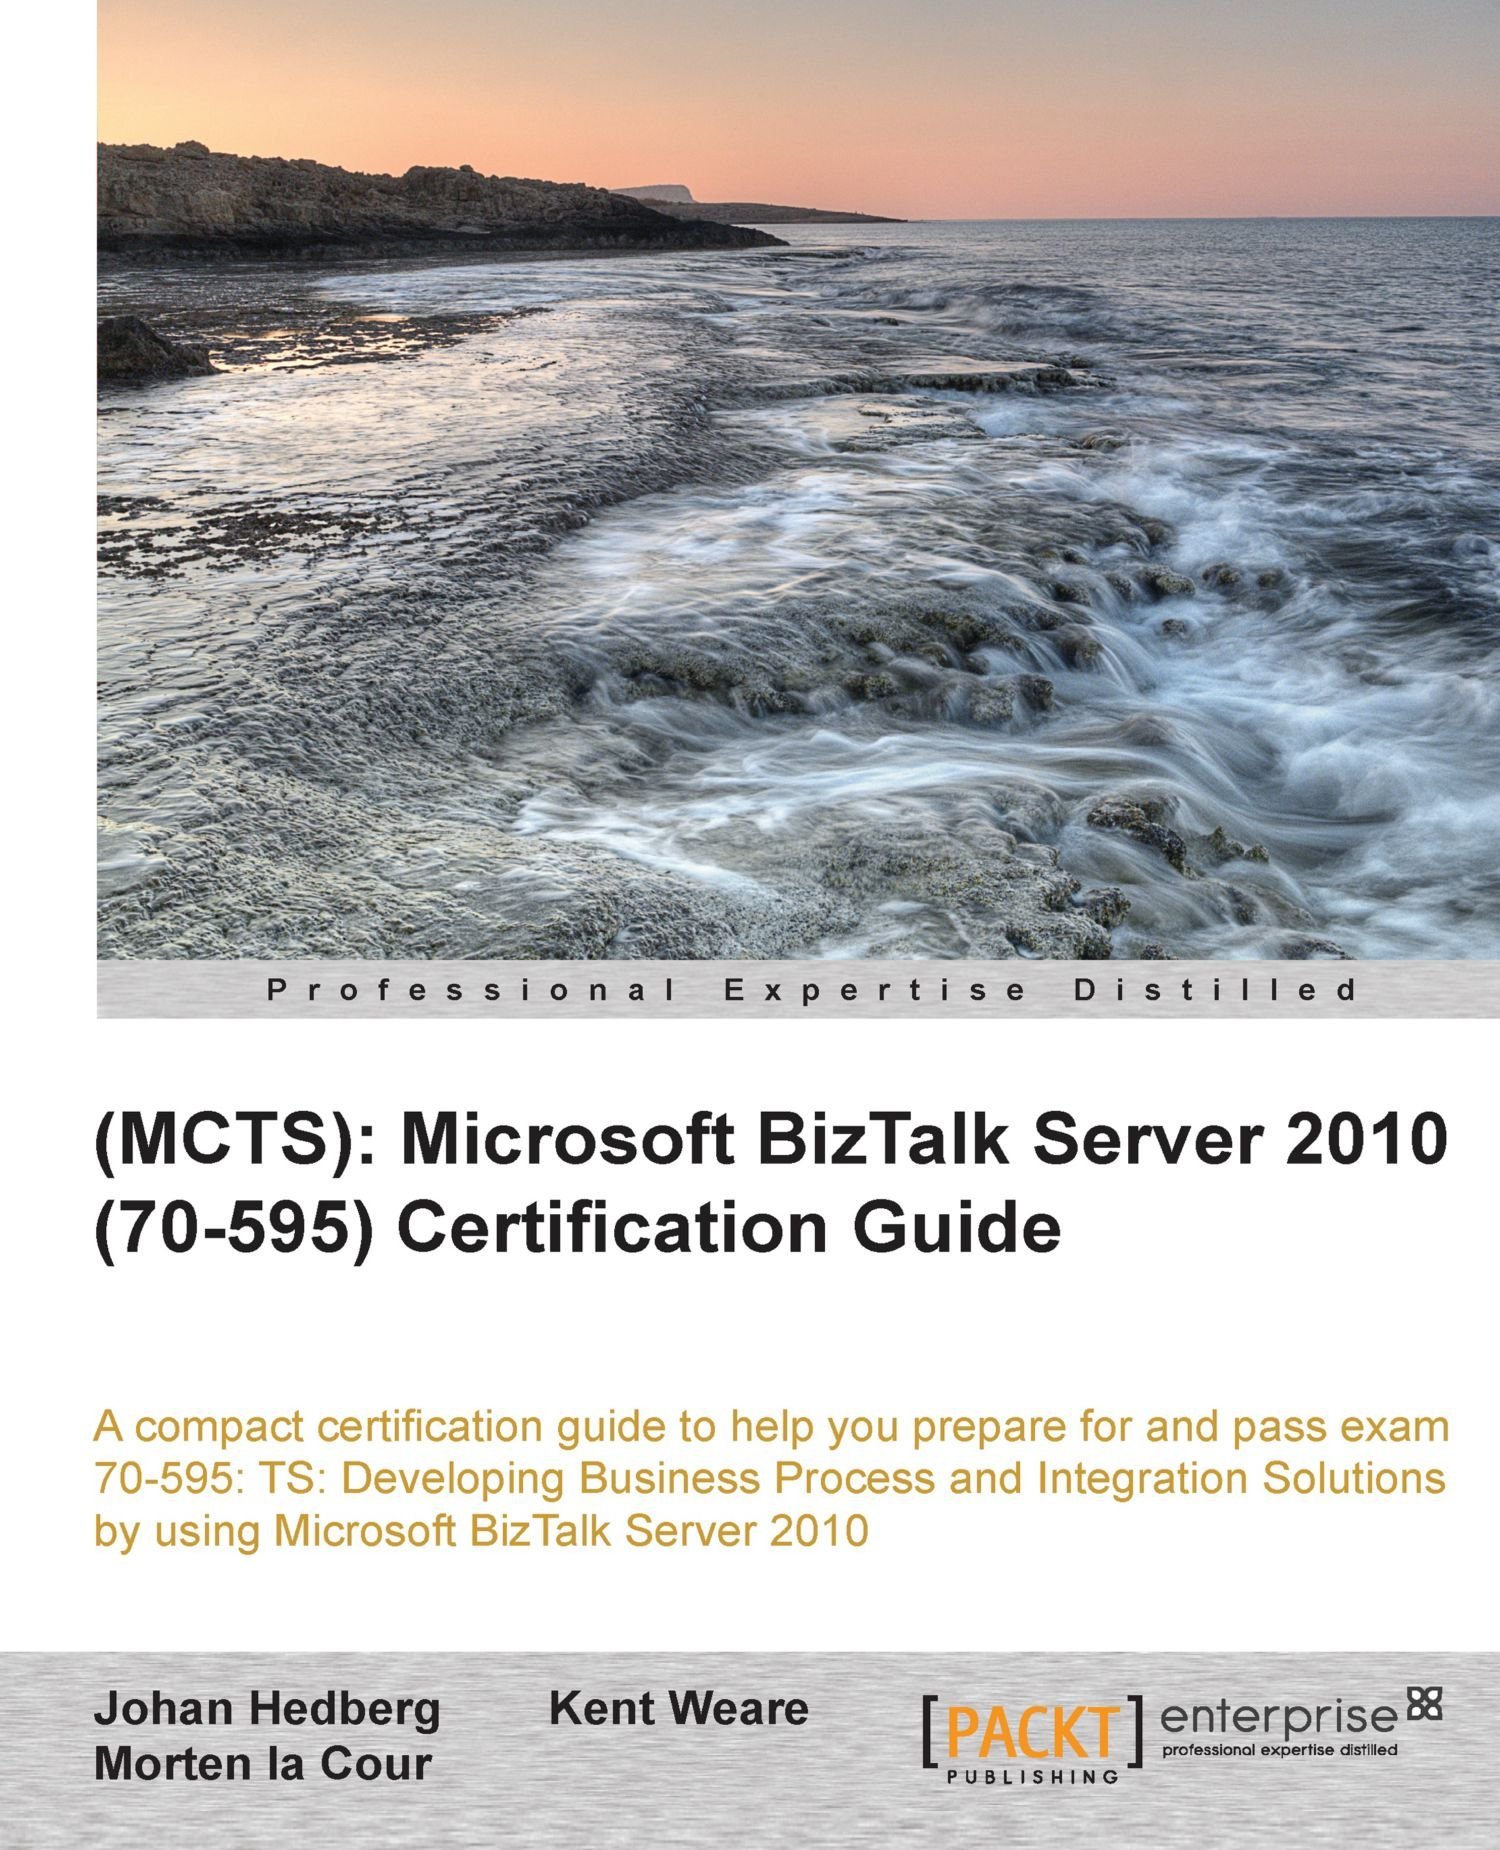 Mcts Microsoft Biztalk Server 2010 70 595 Certification Guide